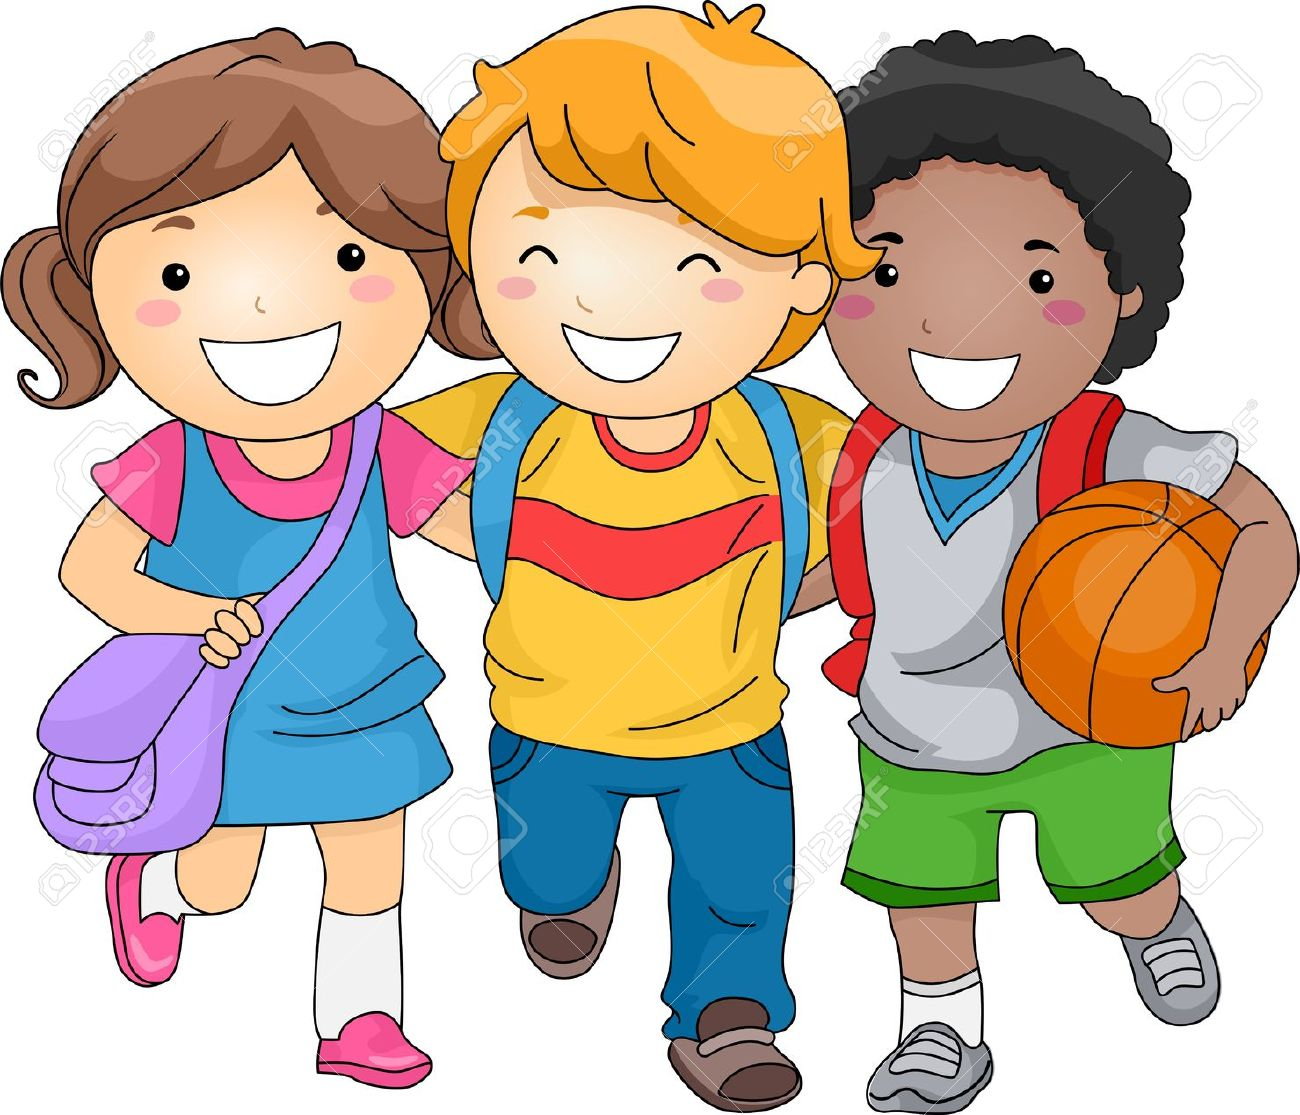 Children making art clipart image freeuse stock Free Three Amigos Cliparts, Download Free Clip Art, Free Clip Art on ... image freeuse stock